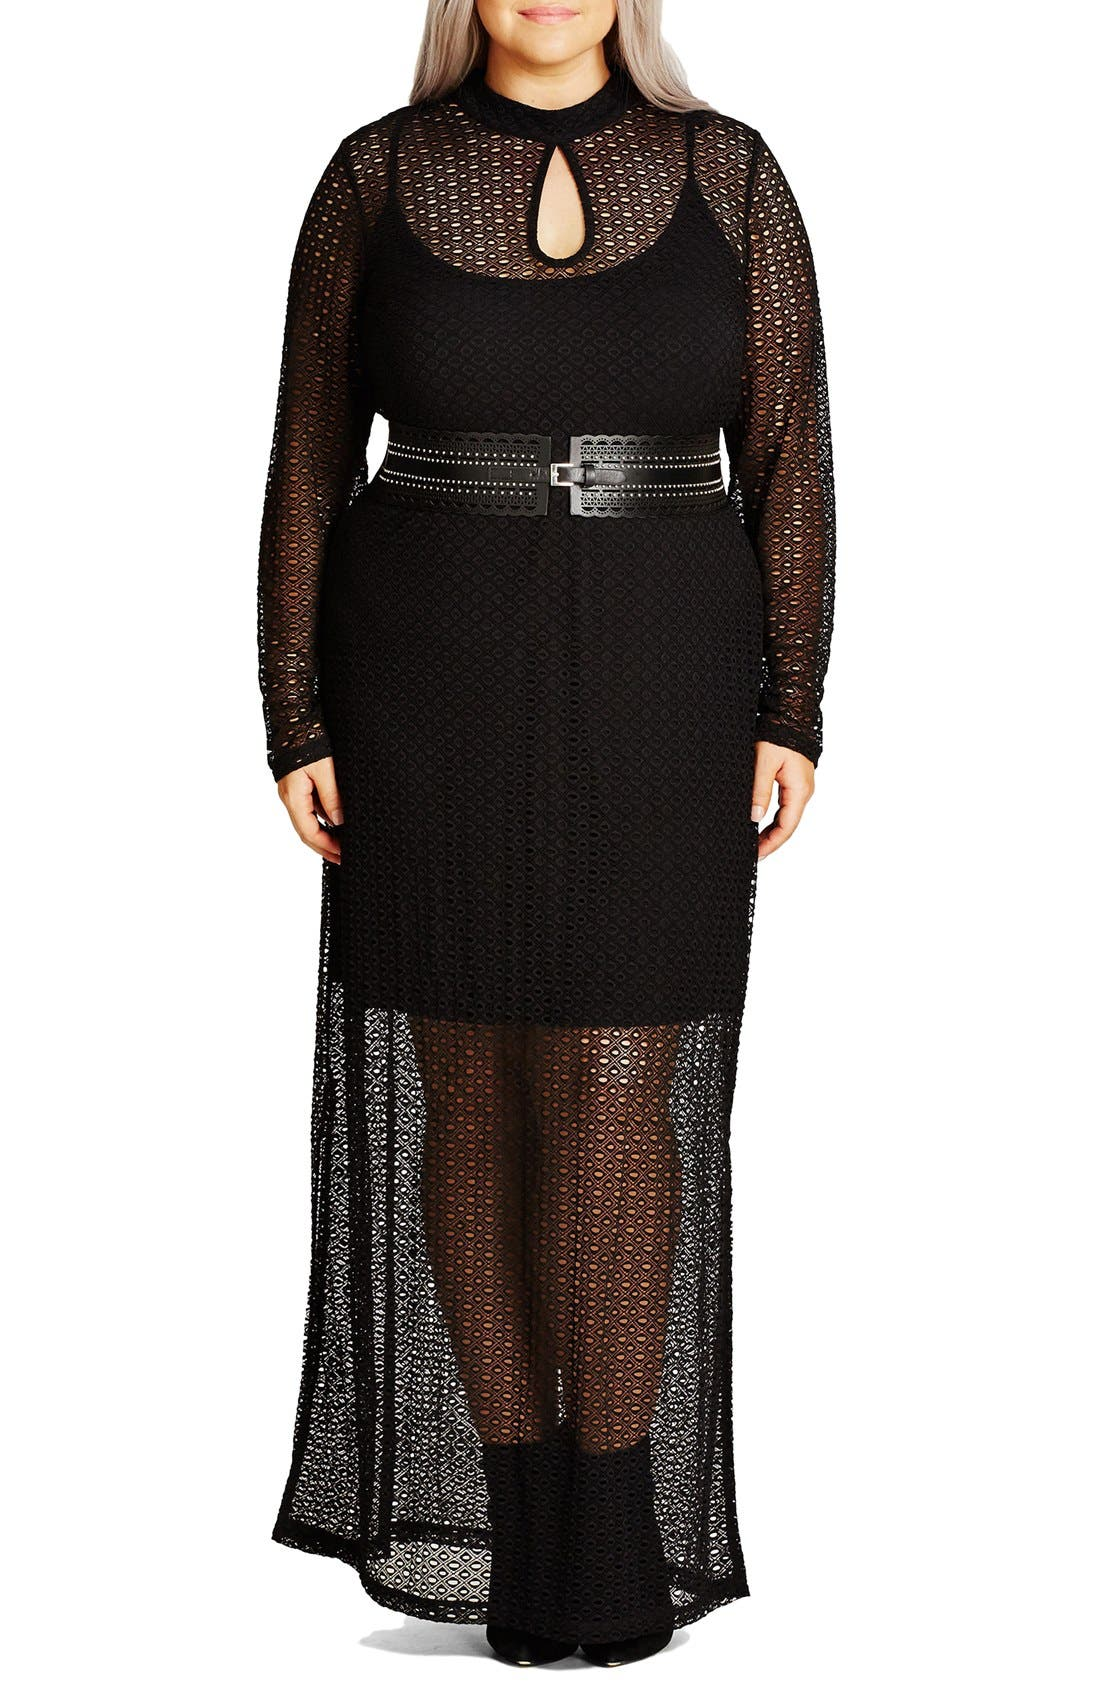 Alternate Image 1 Selected - City Chic Geo Lace Maxi Dress (Plus Size)